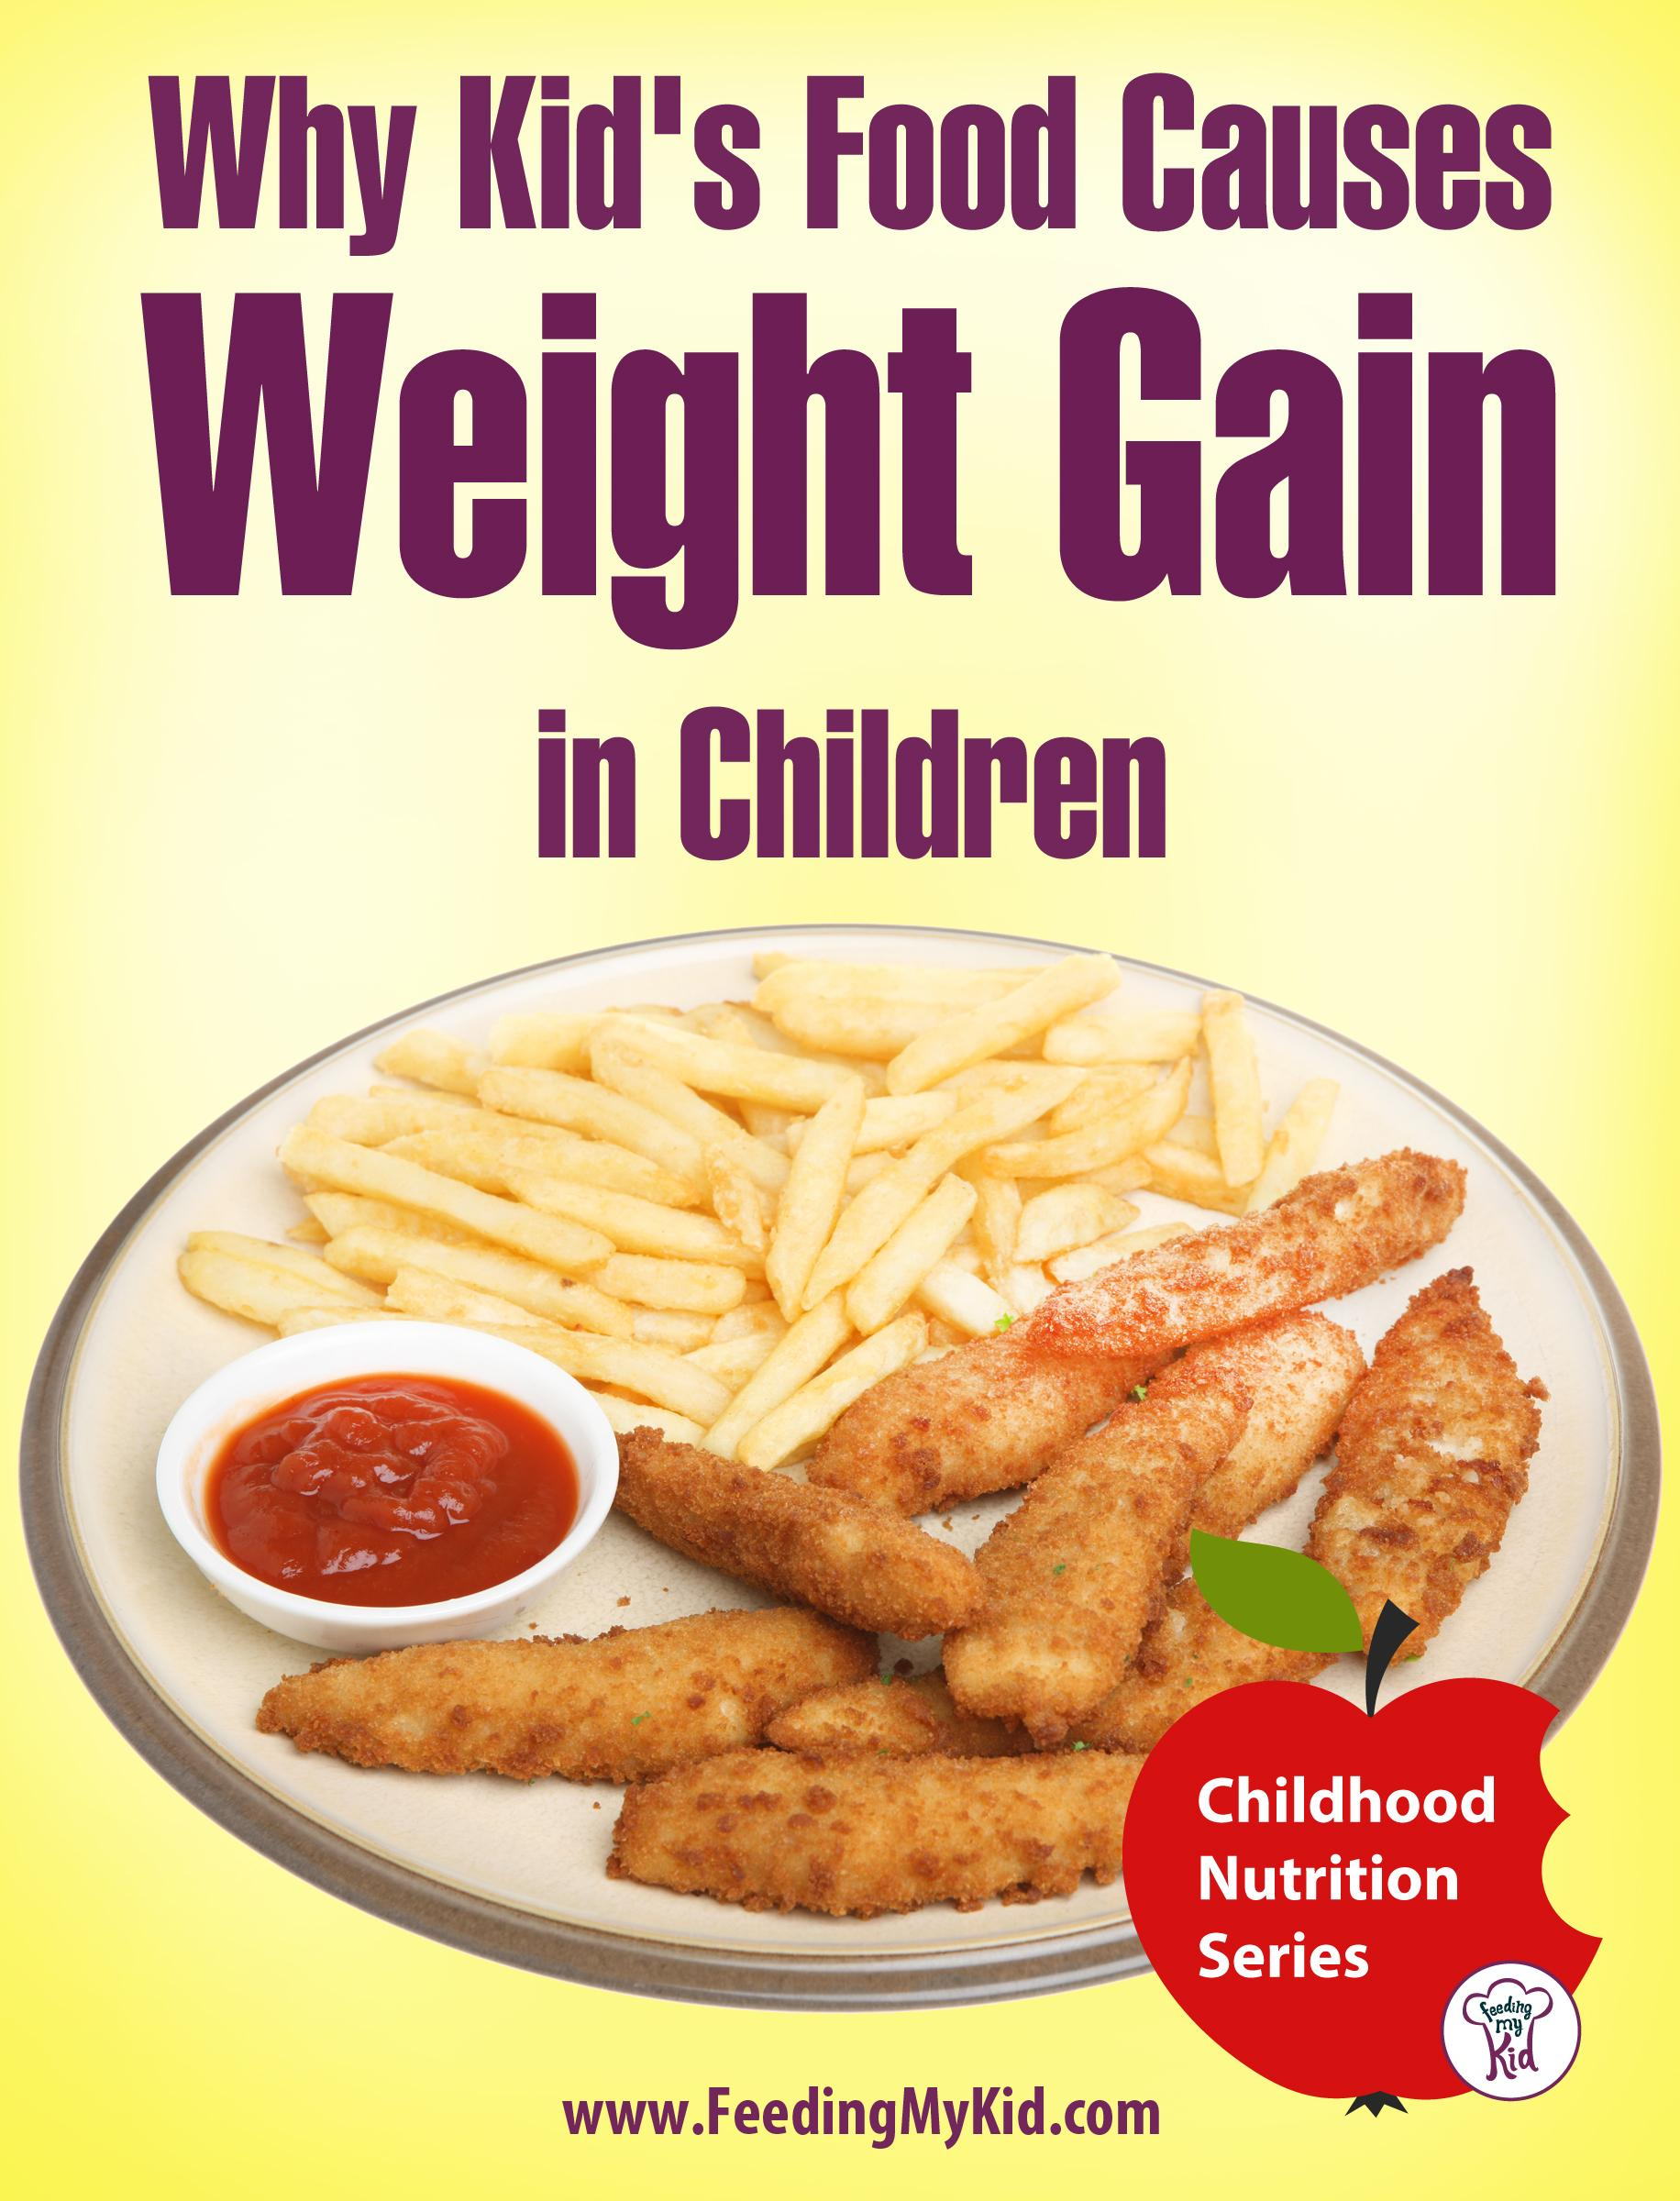 Why Kid's Food Causes Weight Gain in Children - Toucan Sam, Tony the Tiger and the Keebler Elf are all marketing tactics created to help promote a brand and to ultimately manipulate children into demanding these foods. Here are some tactics to get your kids back on track to a healthy lifestyle .